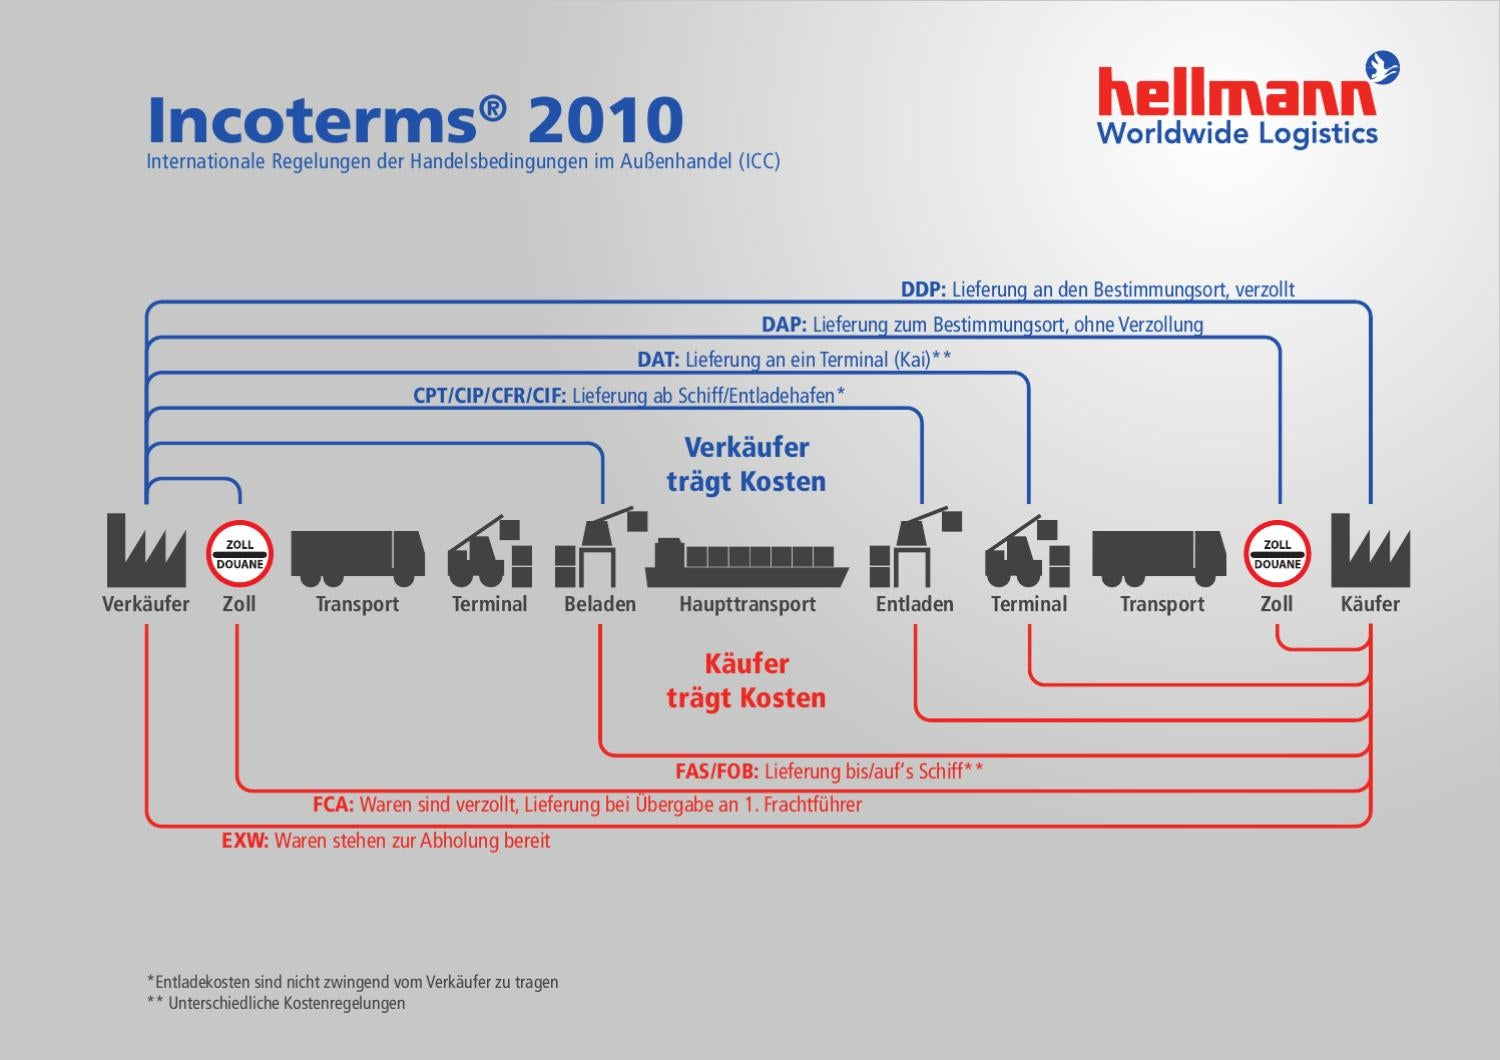 Herramientas Incoterms furthermore  furthermore Incoterms N Rotra Small as well Inco besides Hqdefault. on incoterms 2010